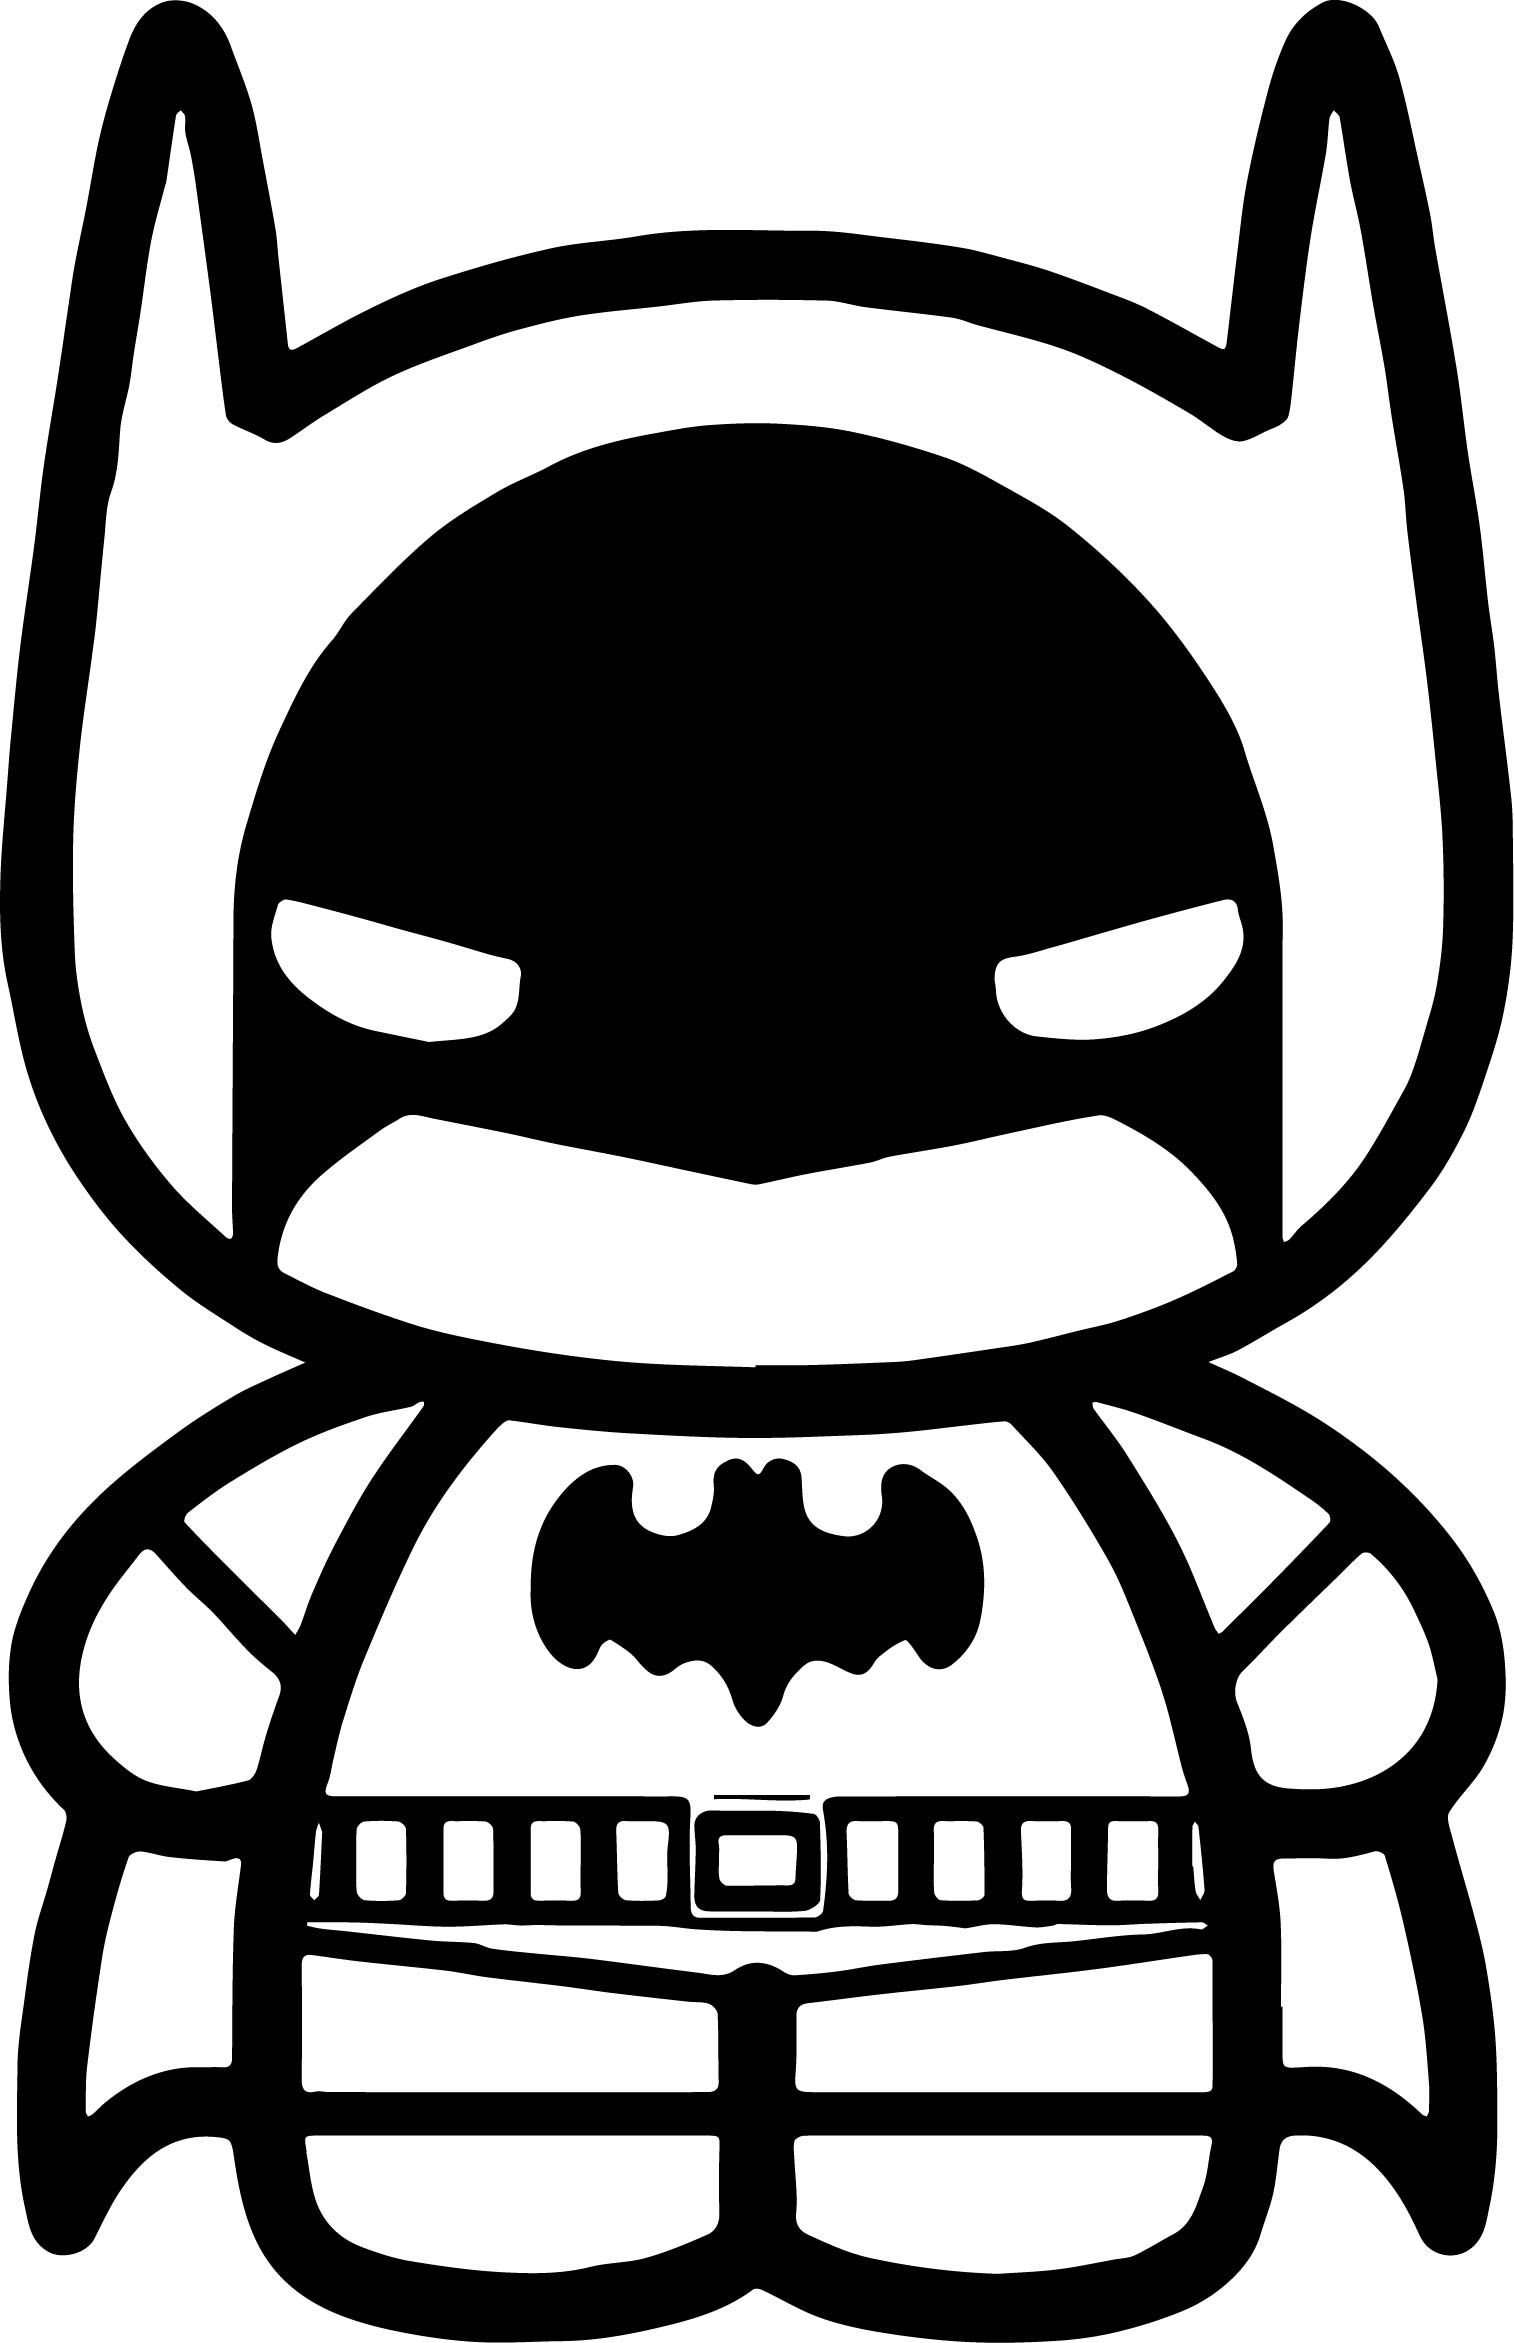 batman pictures for kids top 25 batman coloring pages for your toddler superhero for pictures kids batman